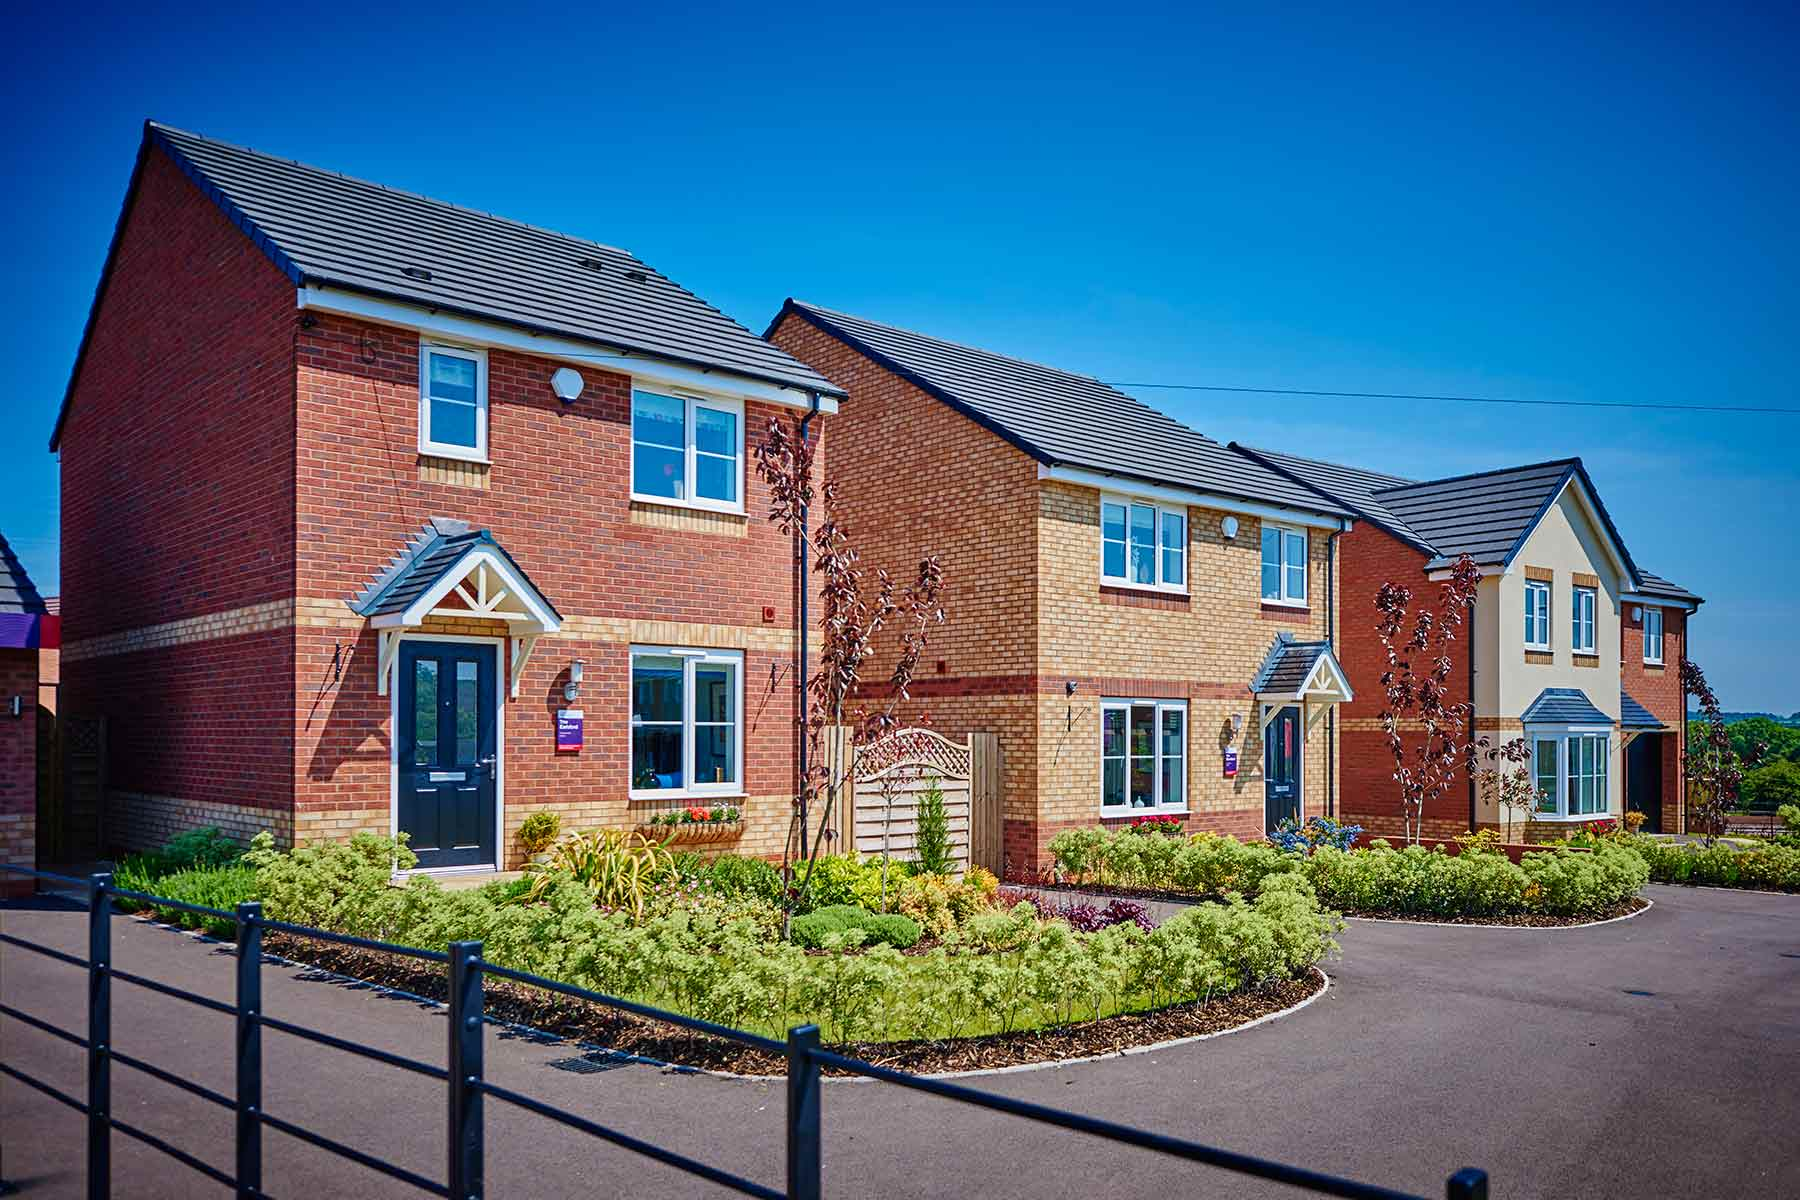 TW_MarstonGrange_Beaconside_Stafford_JUNE2015_0019